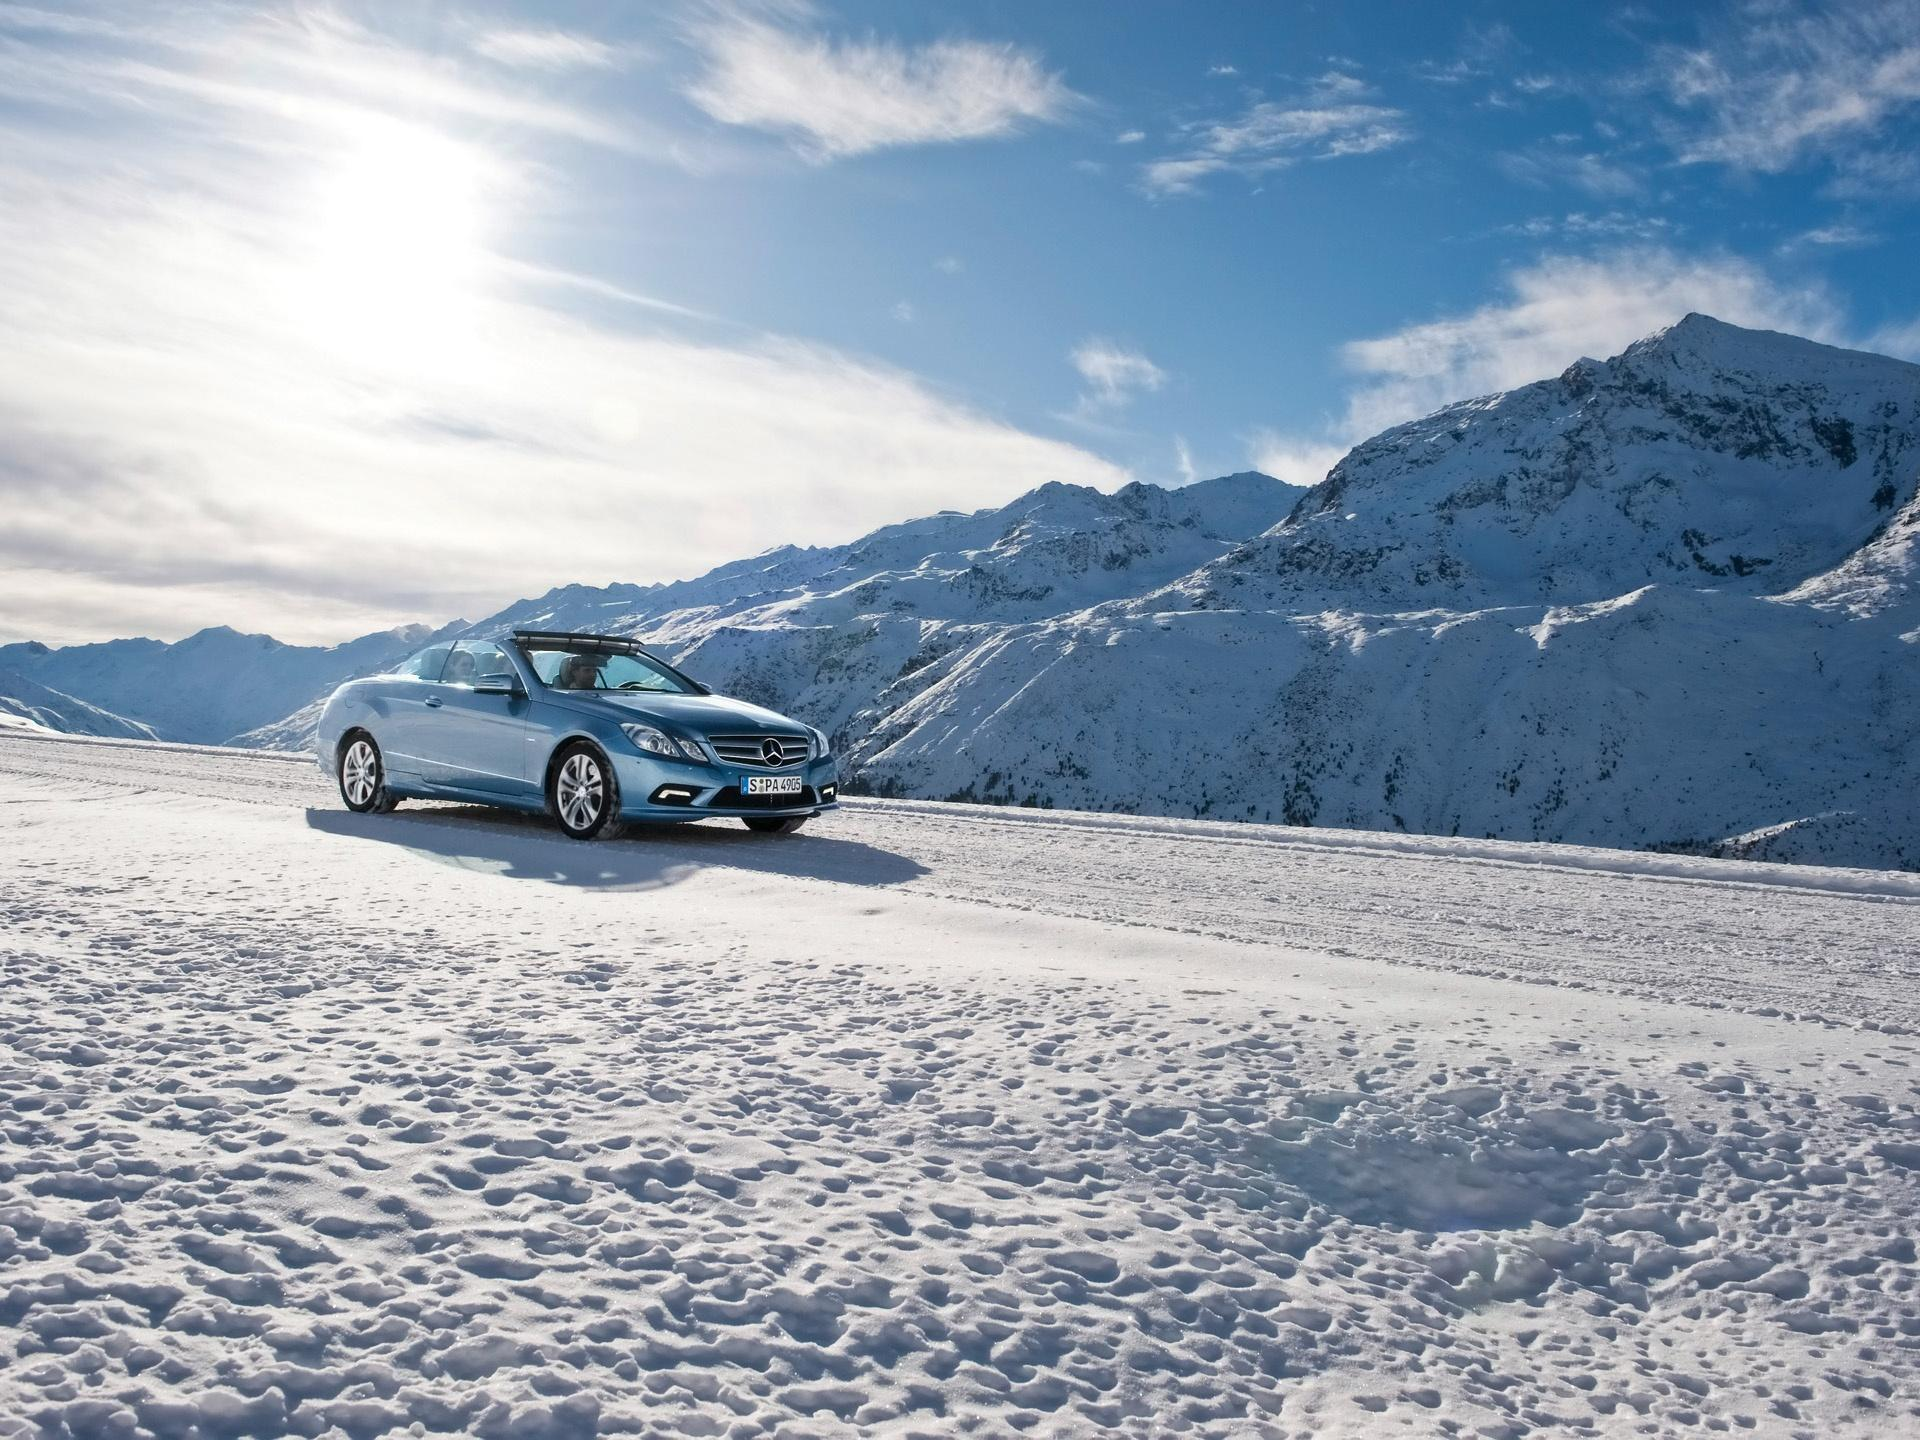 ���� E class cabriolet snow front and side 1920x1440